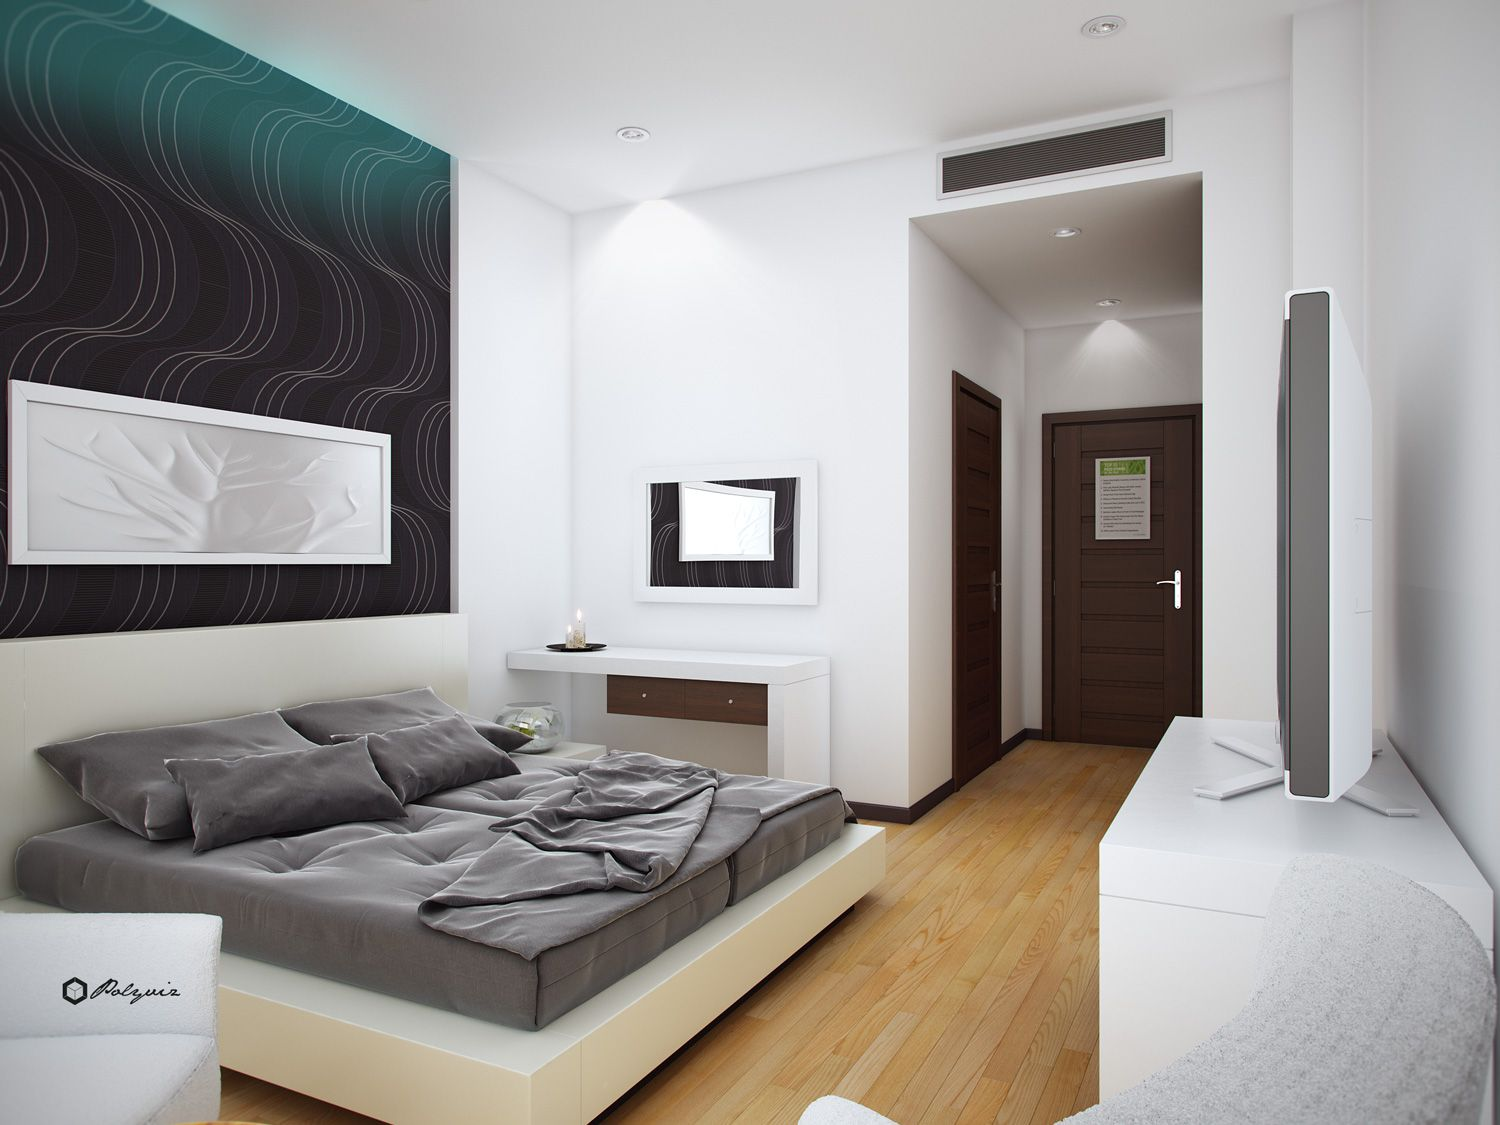 Modern hotel room design google search room design for Interior bedroom designs small rooms